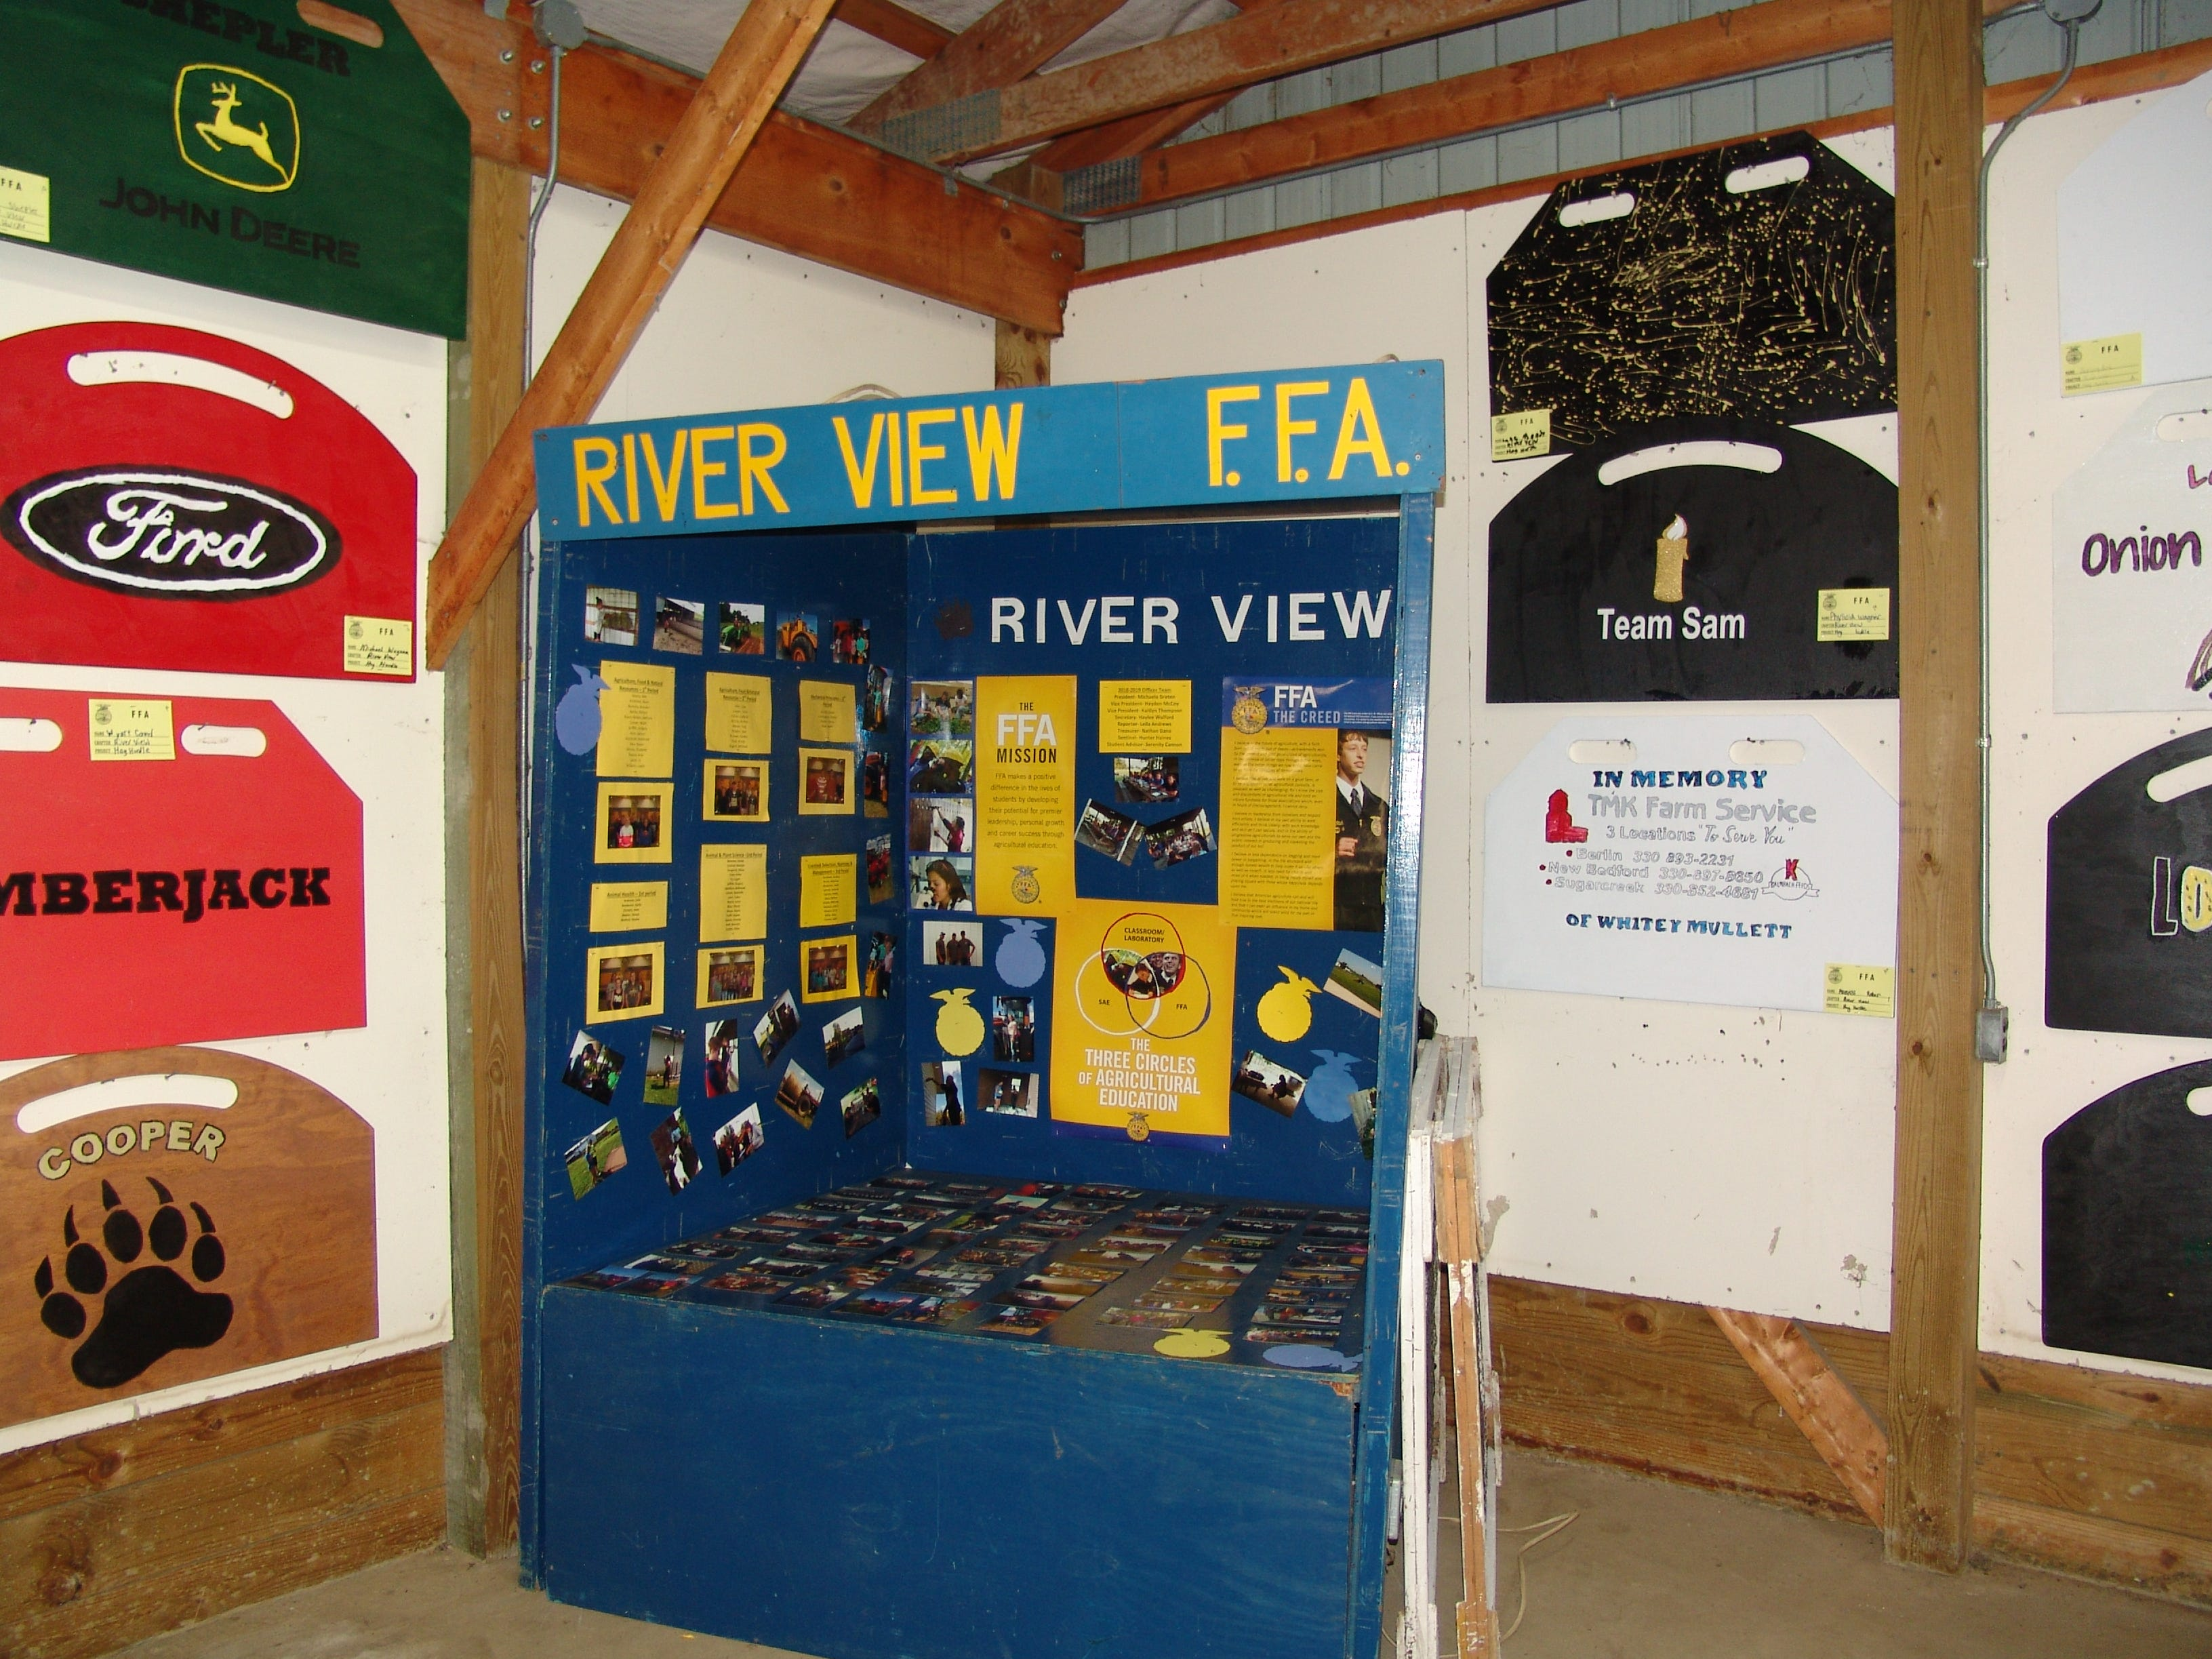 Exhibits in the youth building at the Coshocton Country Fair.